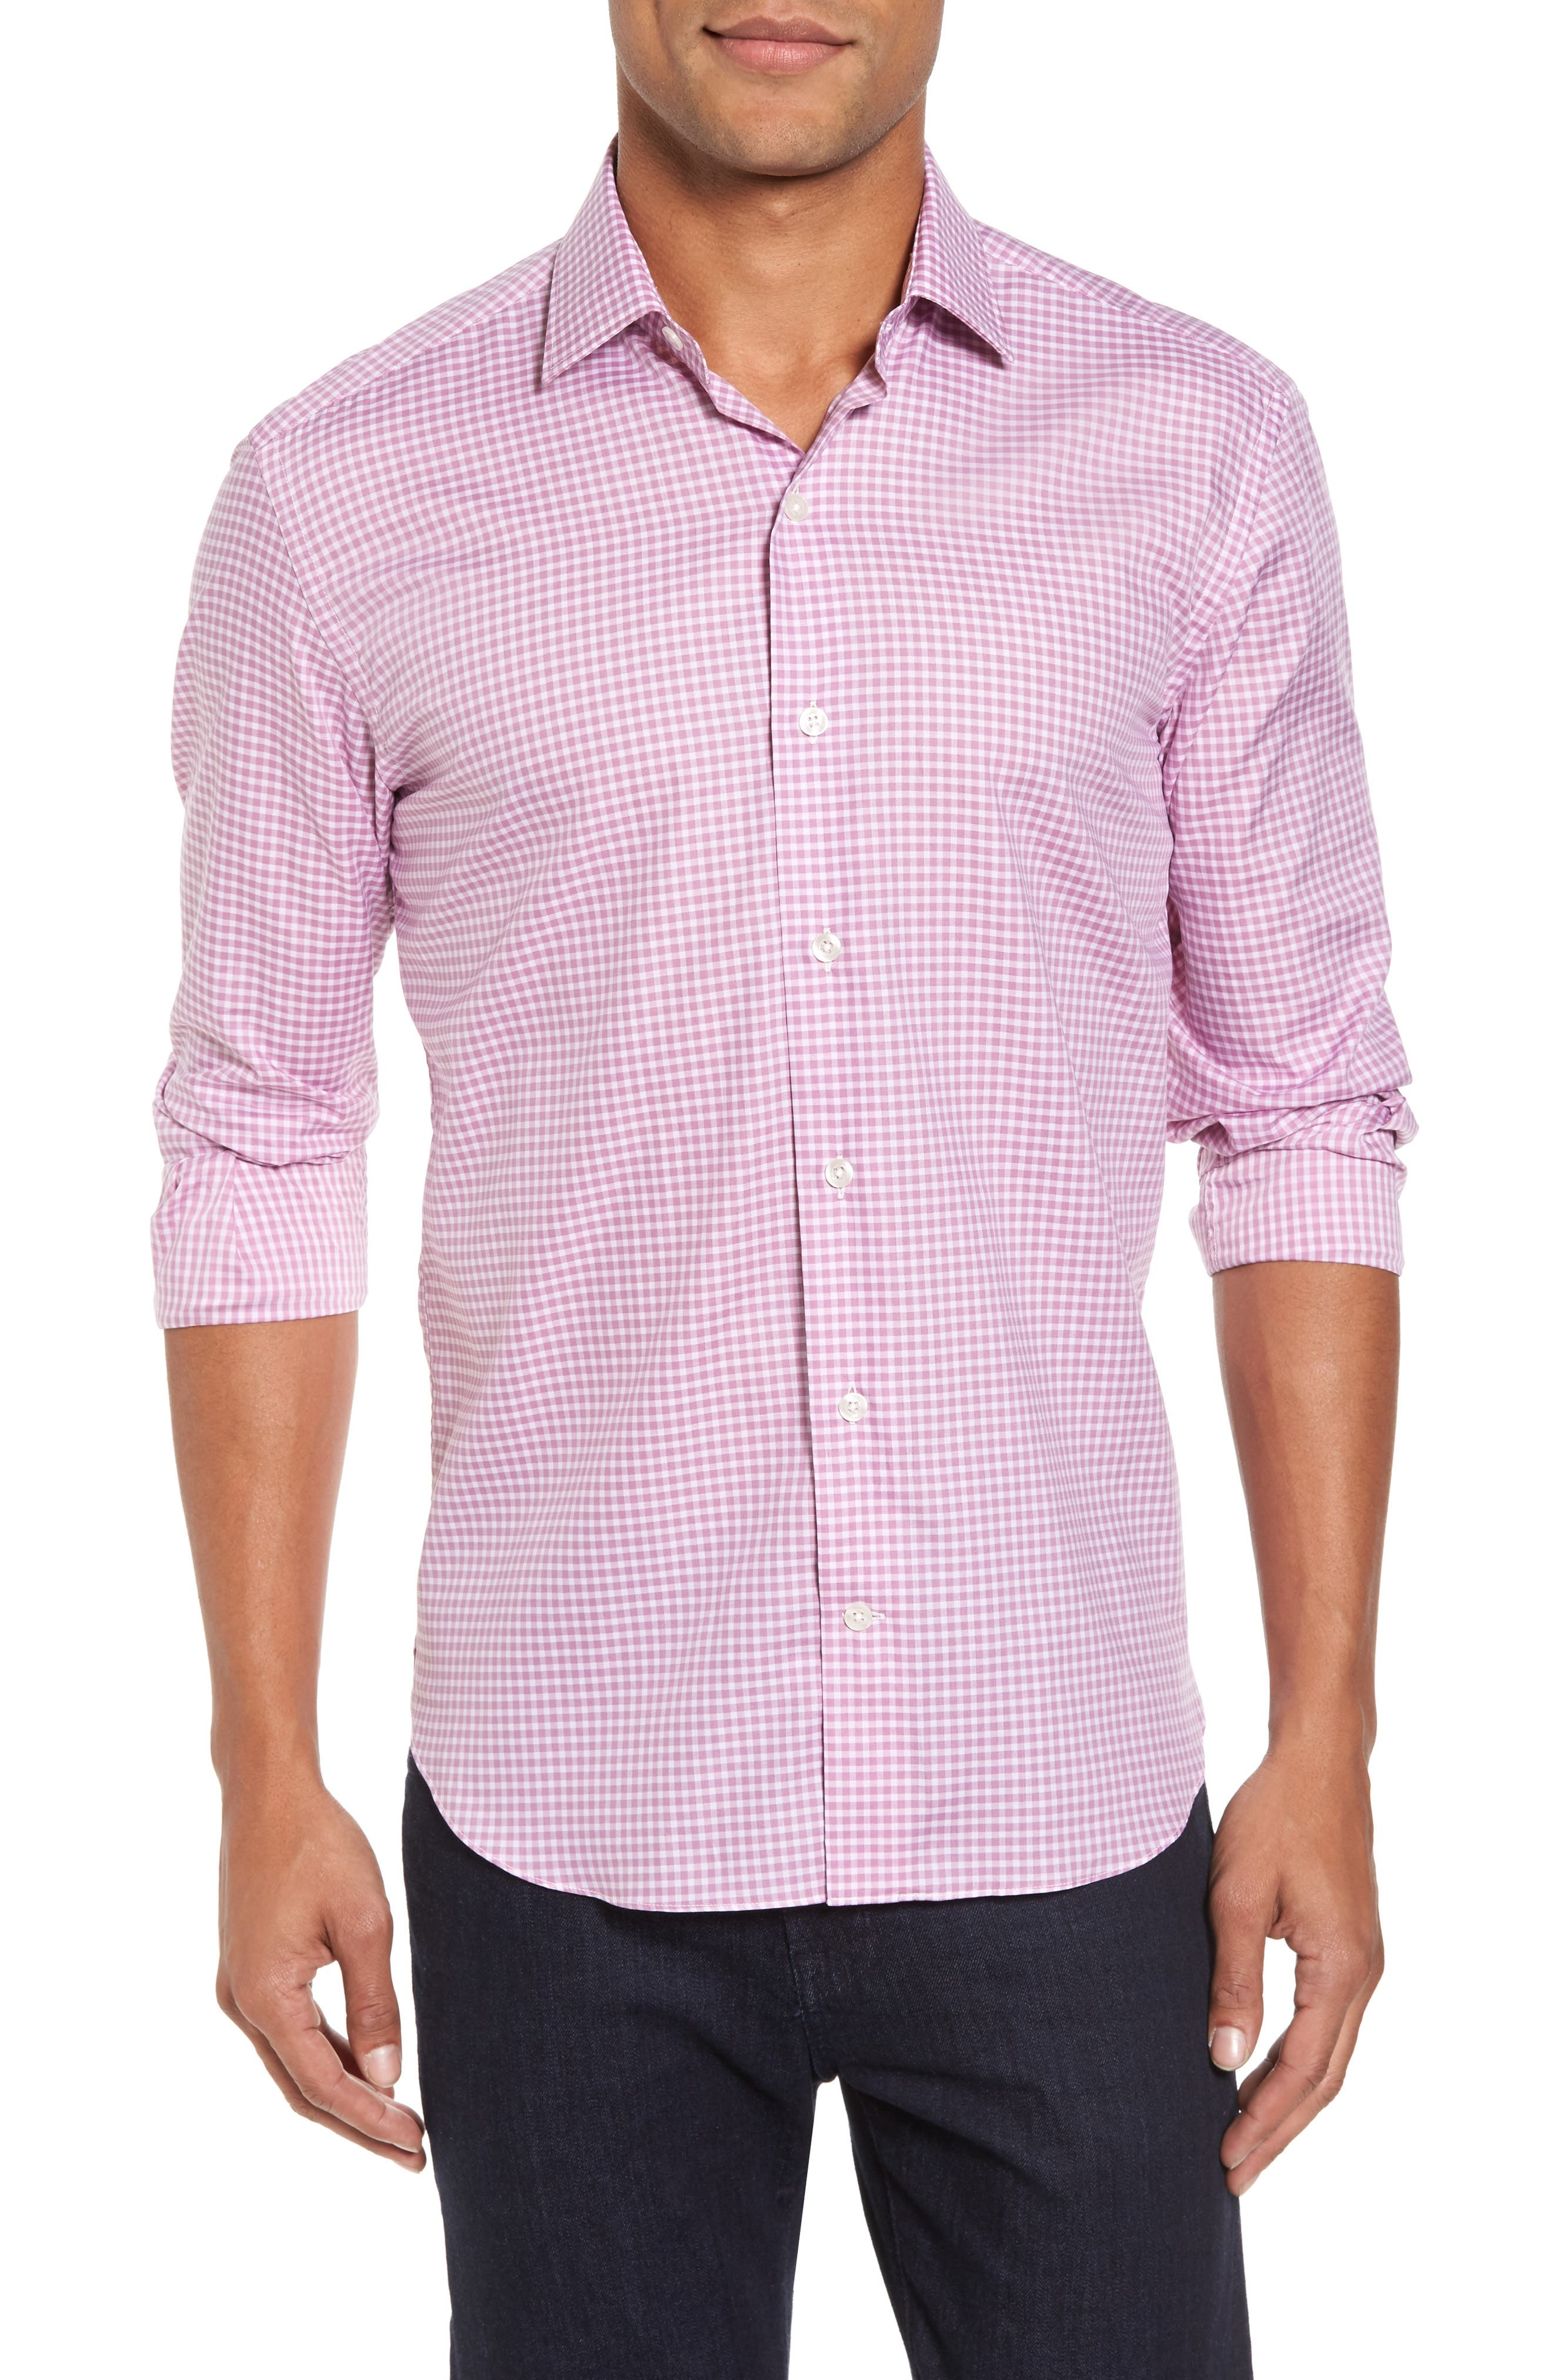 Alternate Image 1 Selected - Culturata Slim Fit Check Twill Sport Shirt